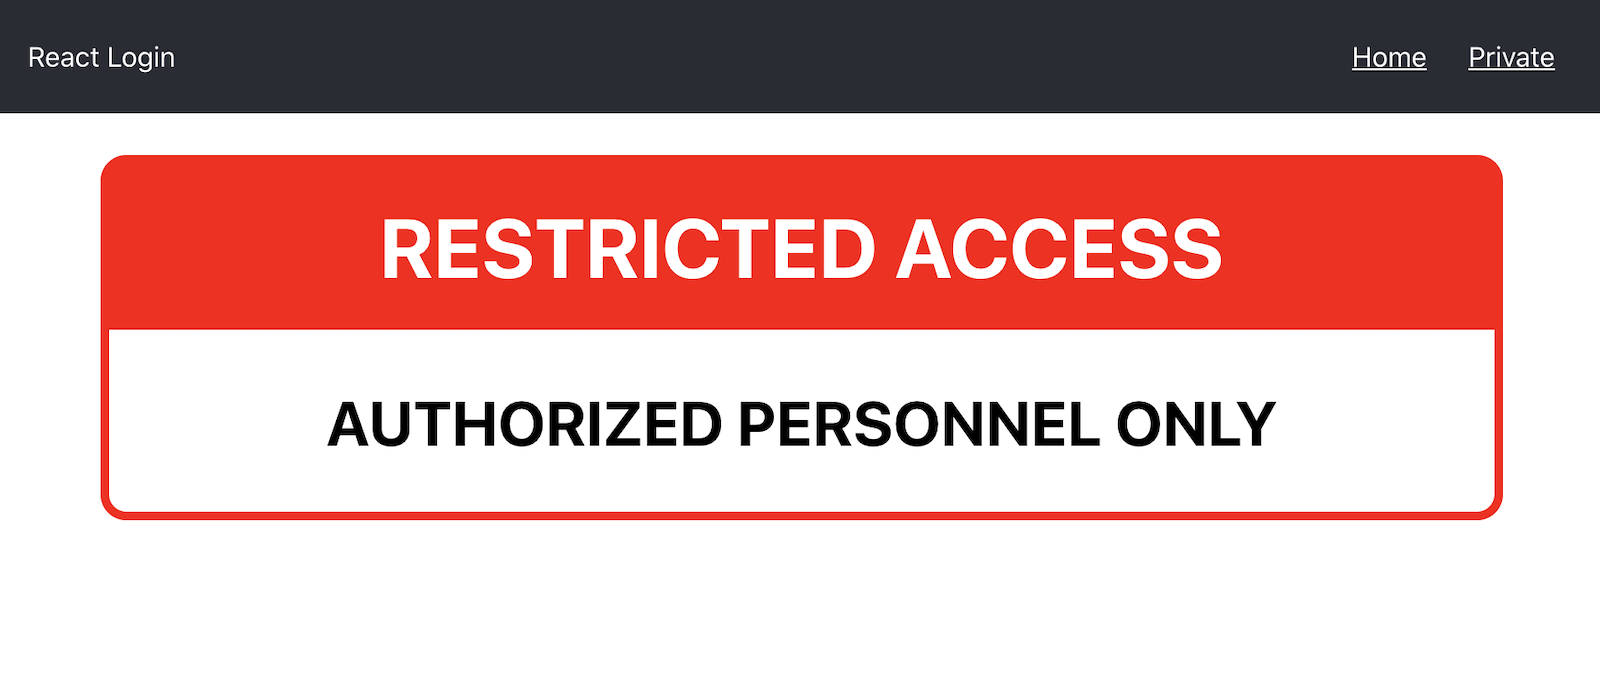 Restricted page that should only be accessible to registered users